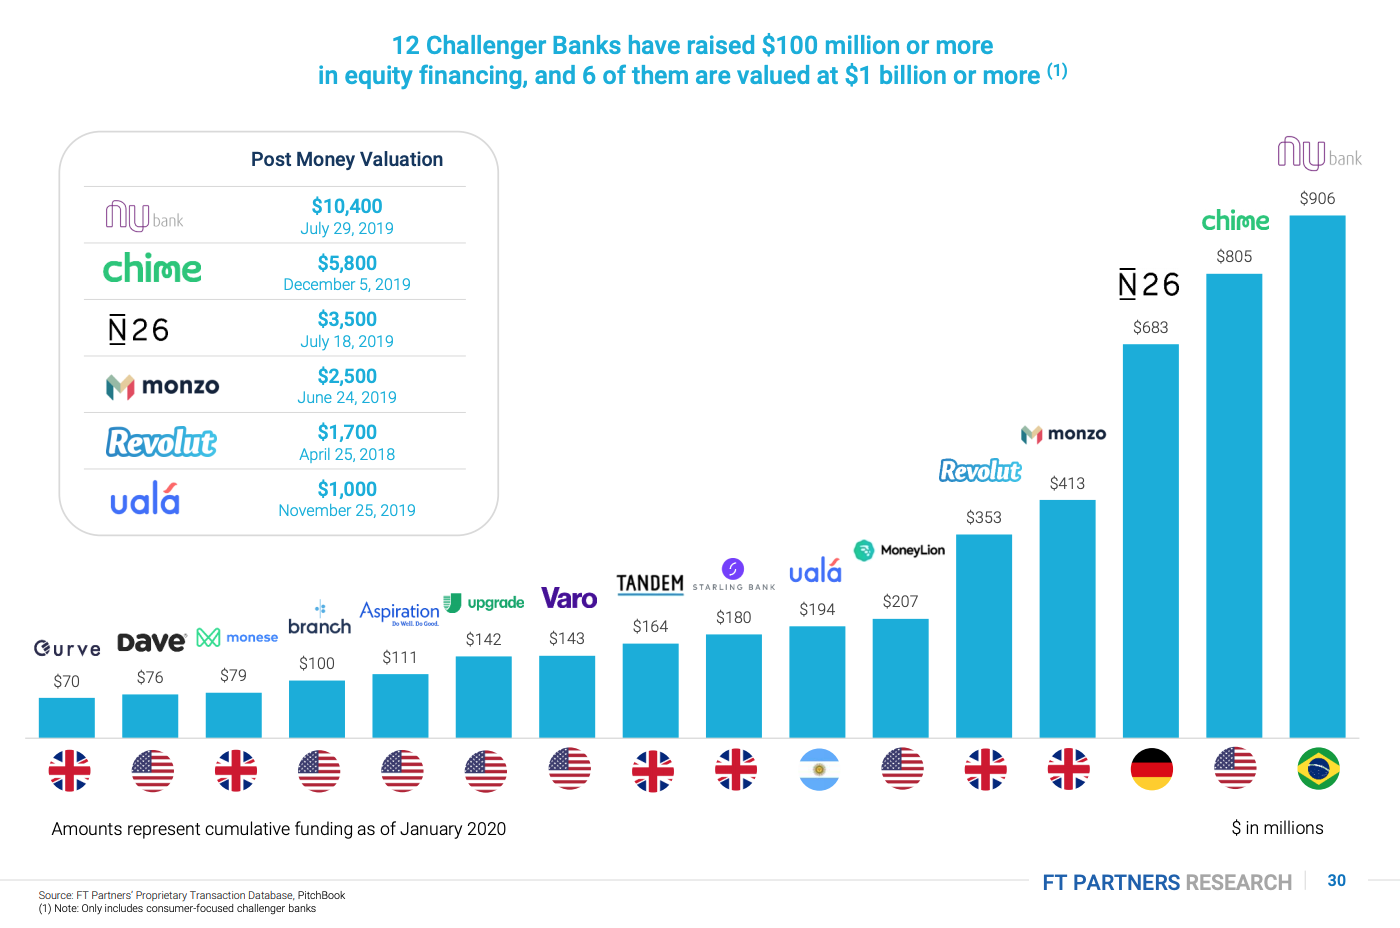 12 Challenger Banks have raised US$100 million or more in equity financing, and 6 of them are valued at US$1 billion or more, The Rise of Challenger Banks- Are the Apps Taking Over?, FT Partners, January 2020